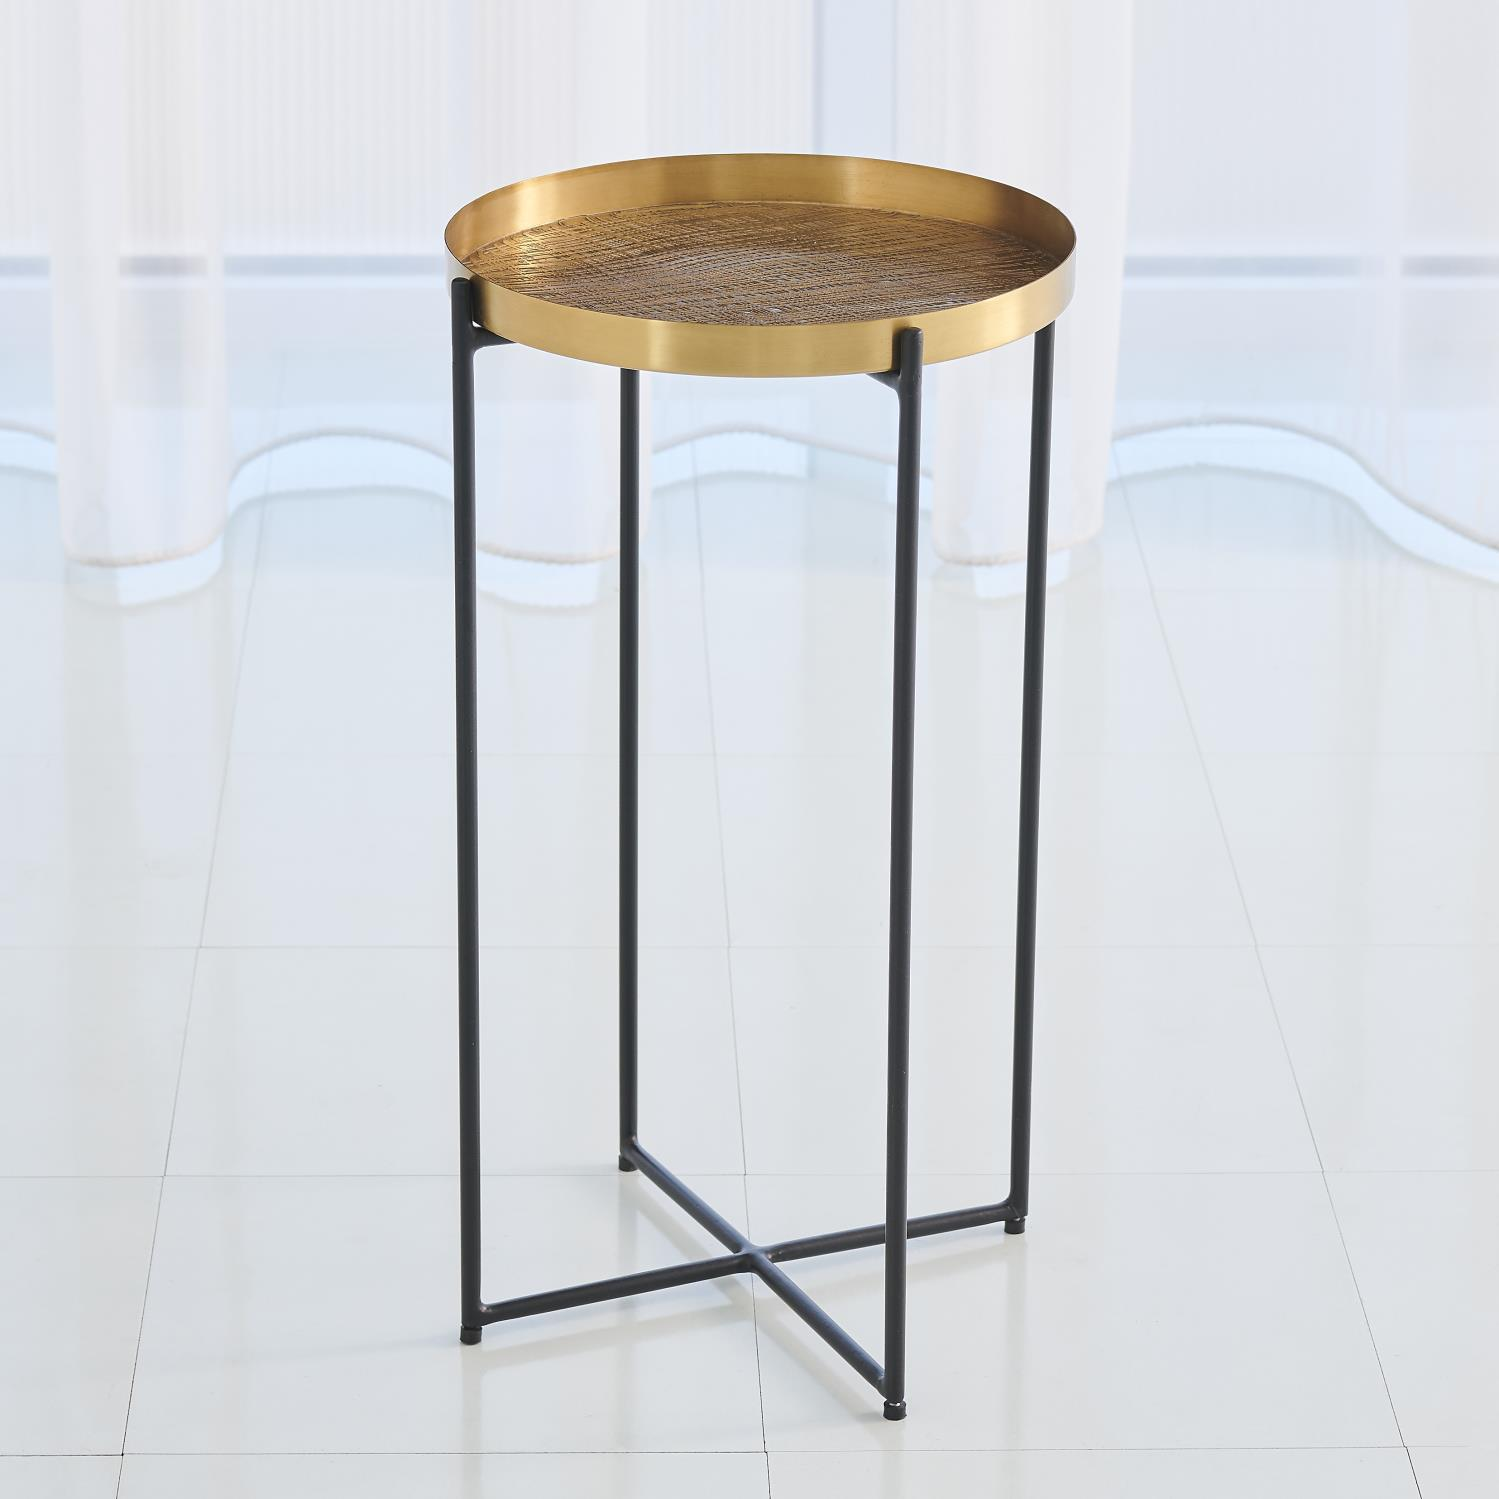 plaid etched accent table antique brass ashley furniture tables mid century dining set white and gold lamp small cloth mosaic garden numeral wall clock folding decorative storage